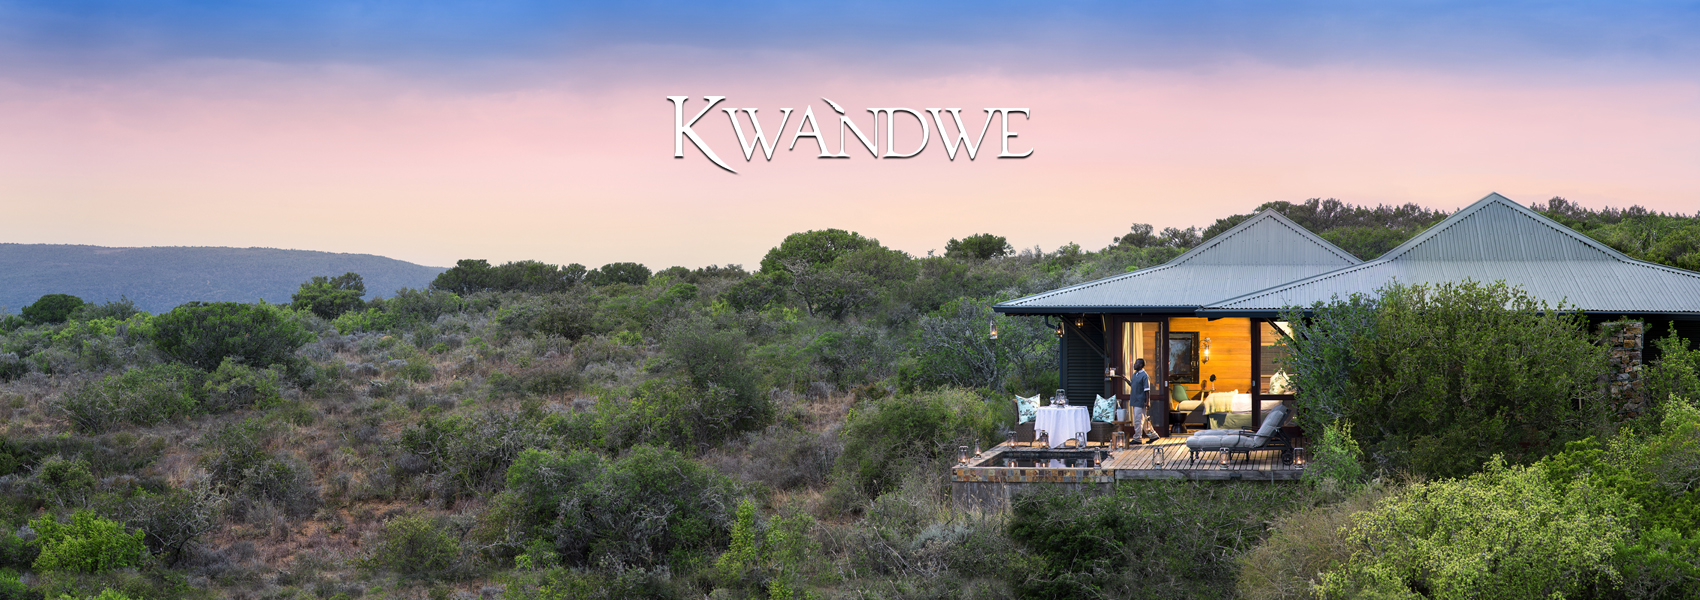 Product-Page_Kwandwe-fly-in-offer